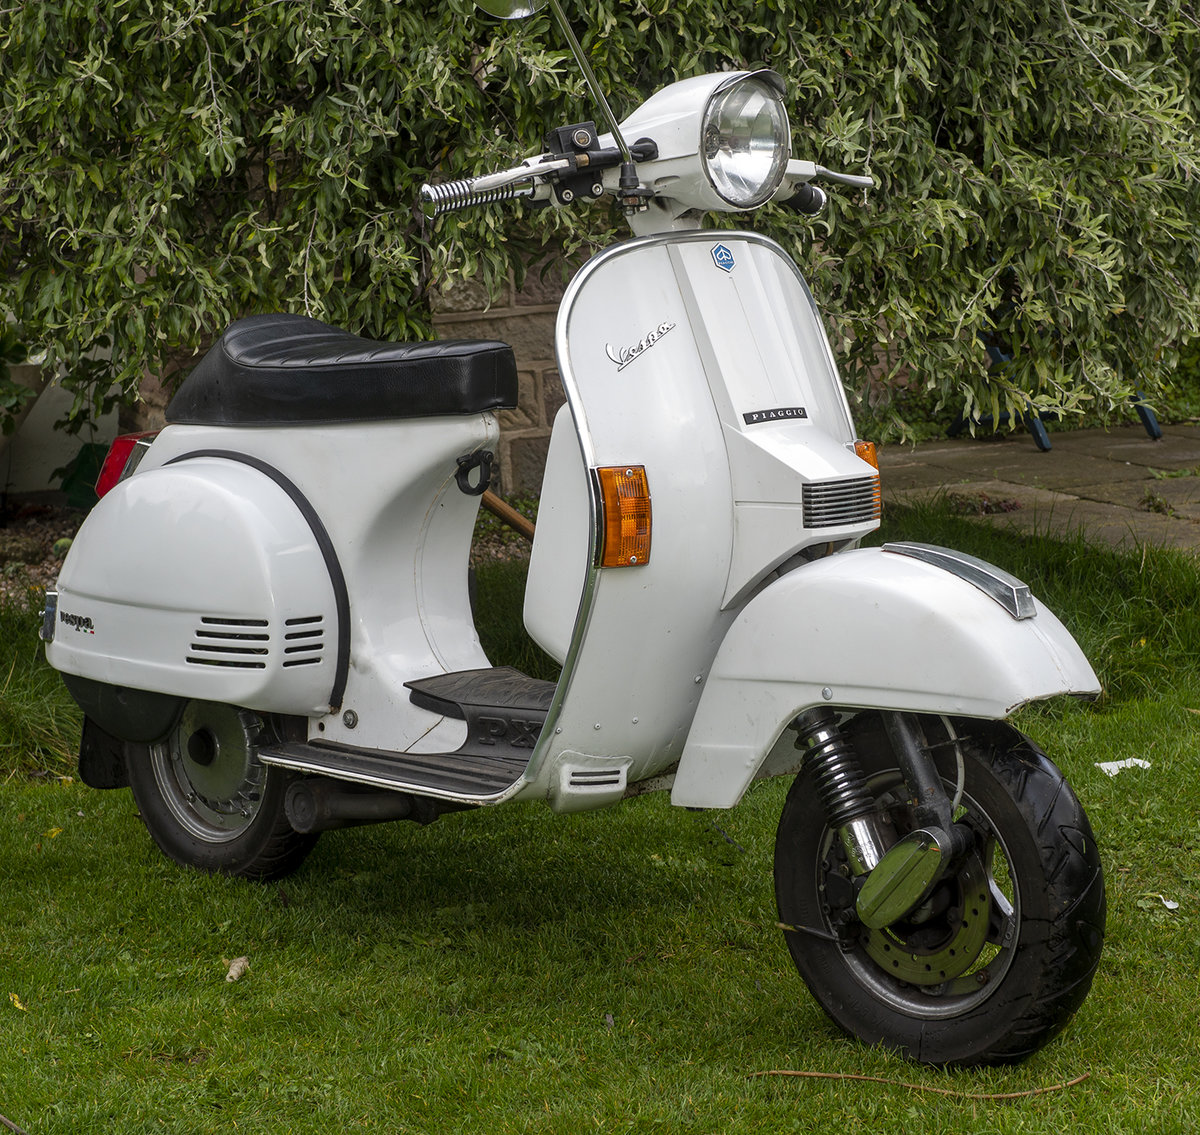 2013 Vespa ll 125 4t SOLD (picture 1 of 6)